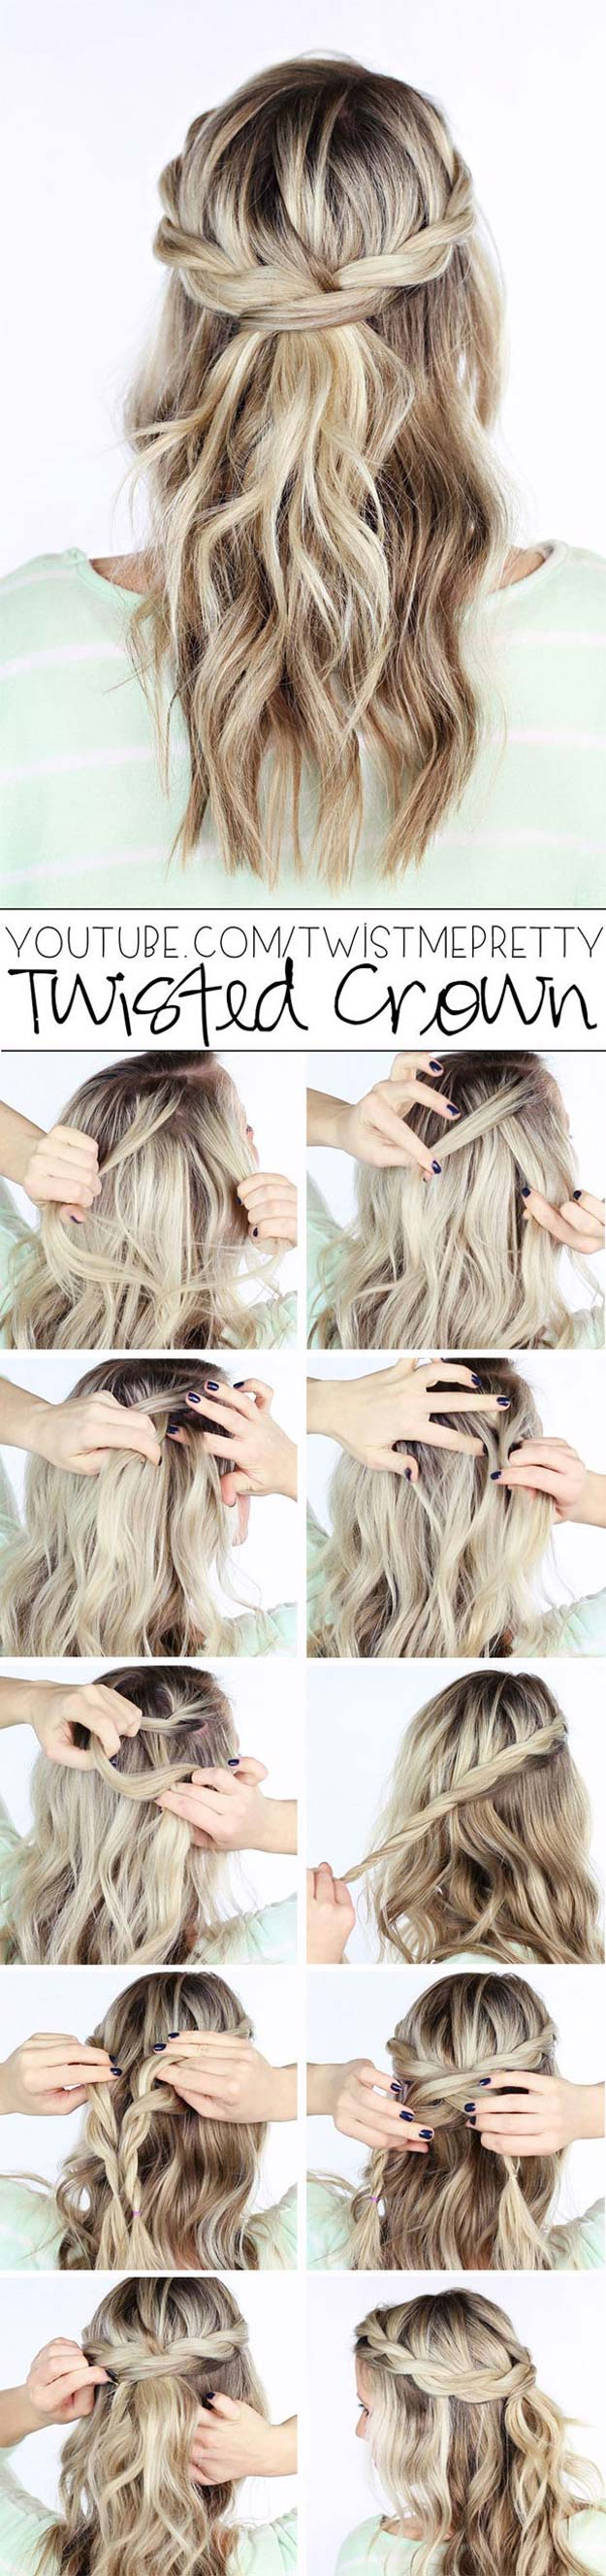 41 DIY Cool Easy Hairstyles That Real People Can Actually Do at Home  DIY Projects for Teens